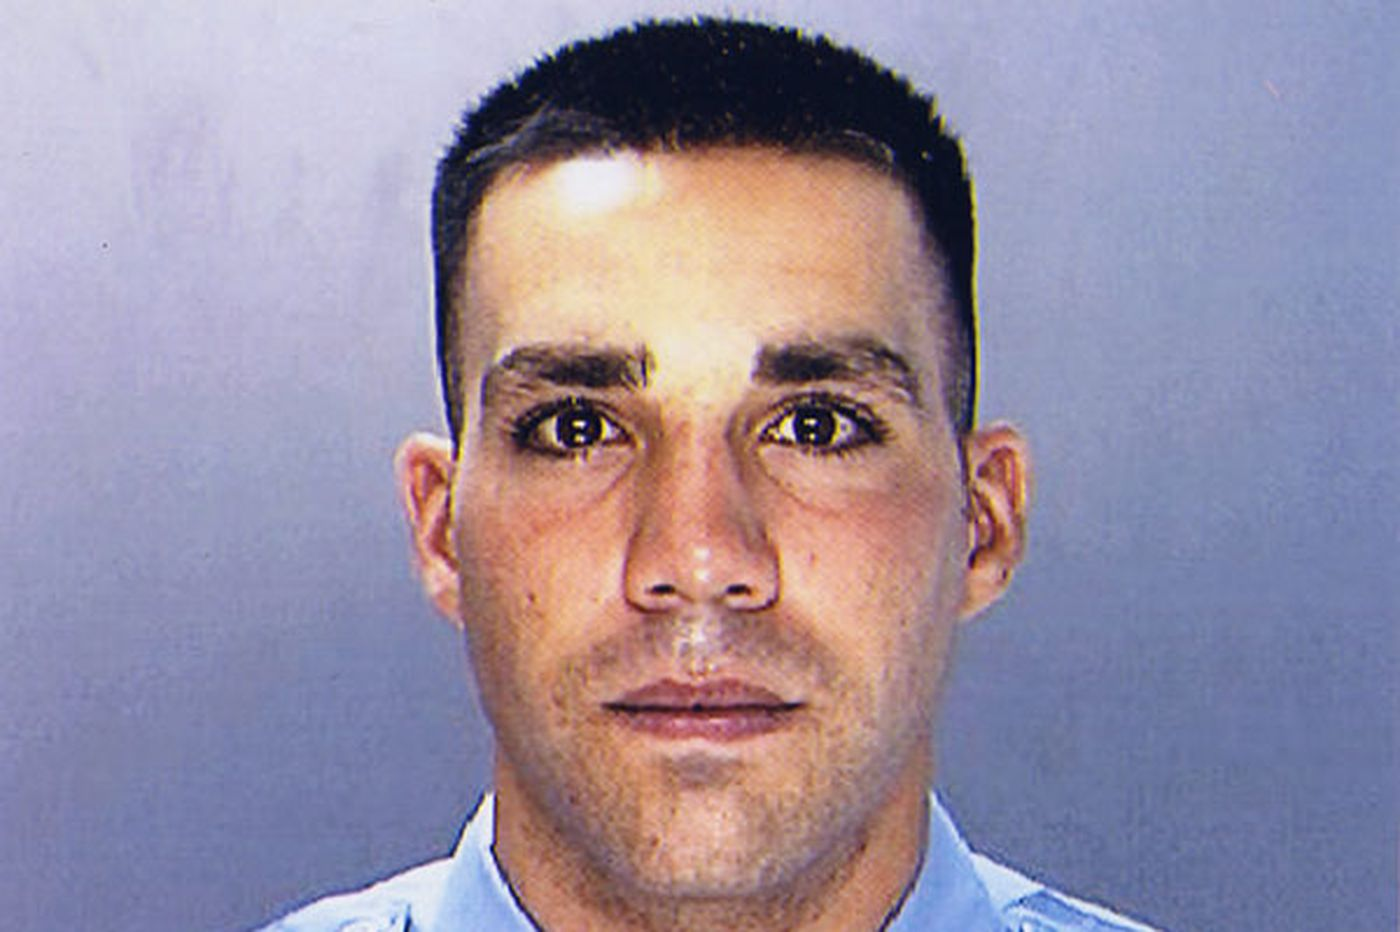 New police officer to inherit badge of cousin killed in Iraq